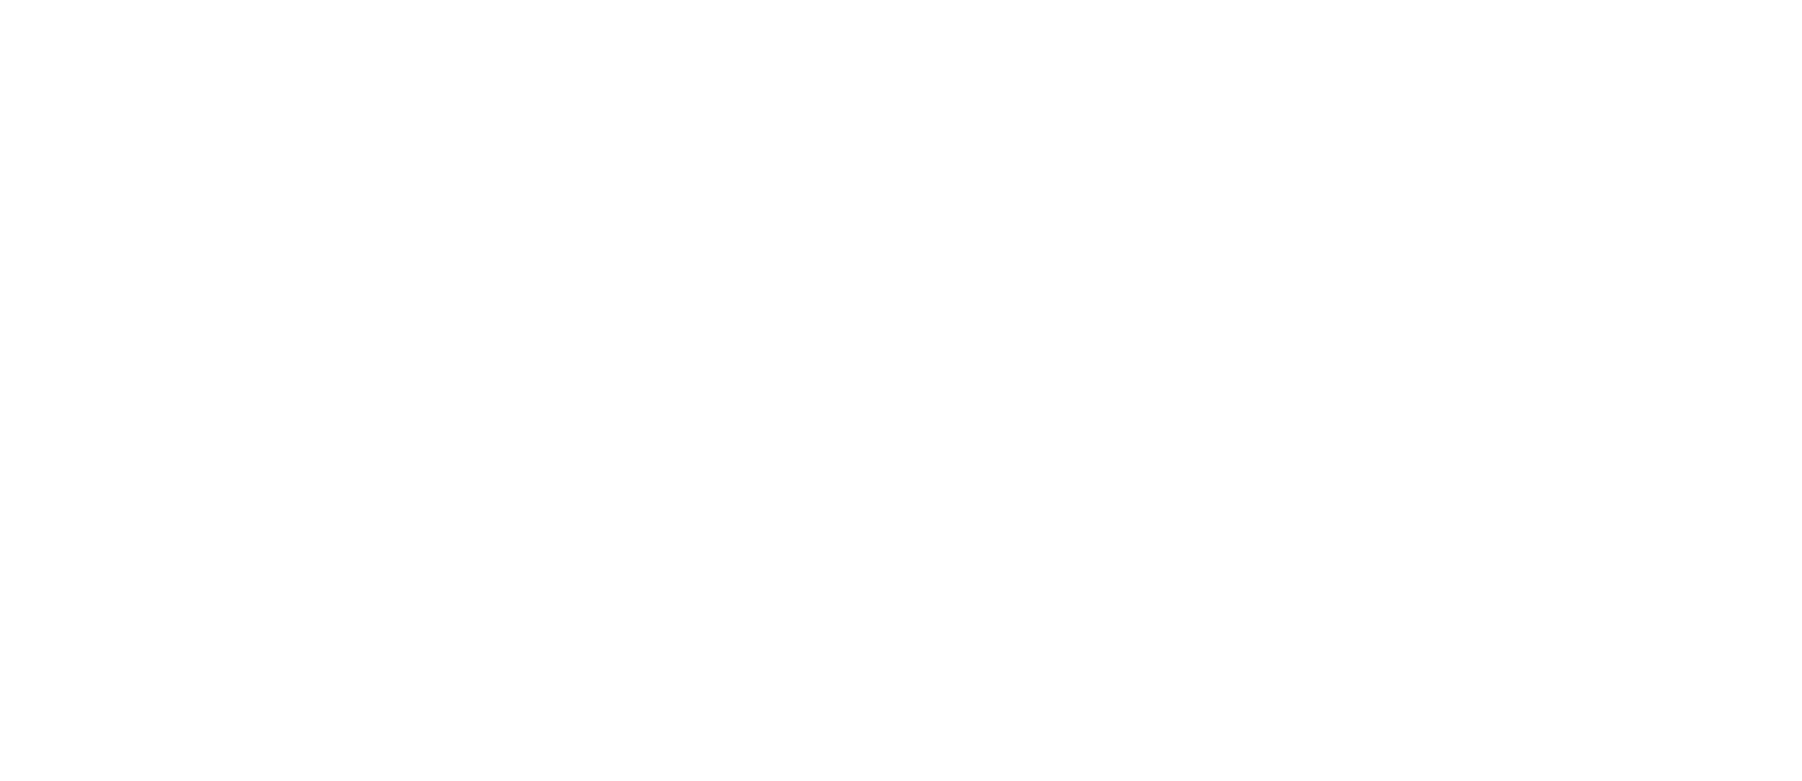 guerrilla foundation logo